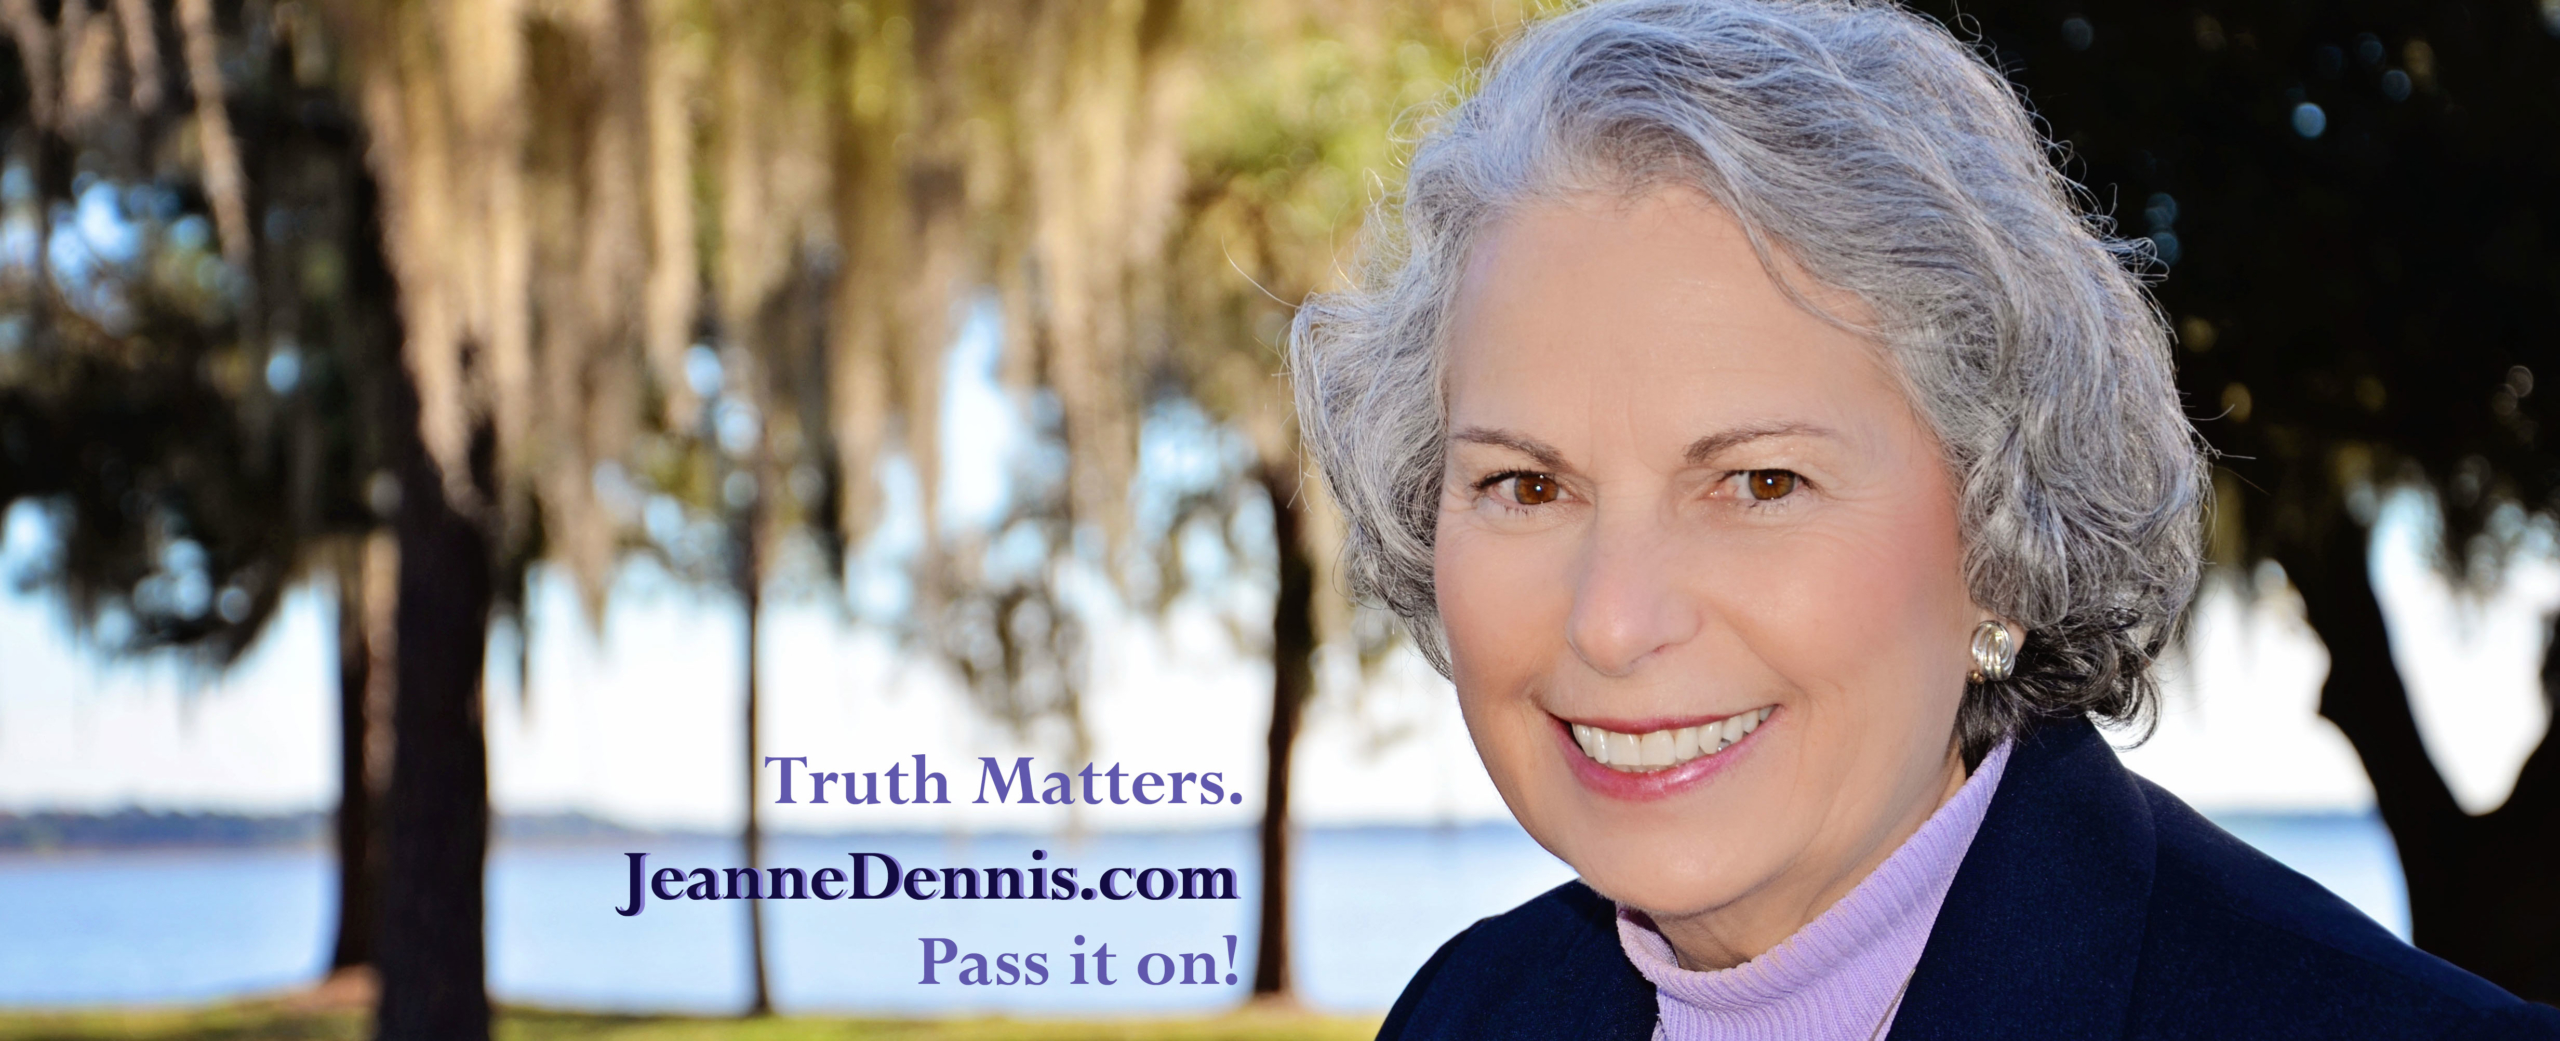 Truth Matters Pass It On JeanneDennis.com